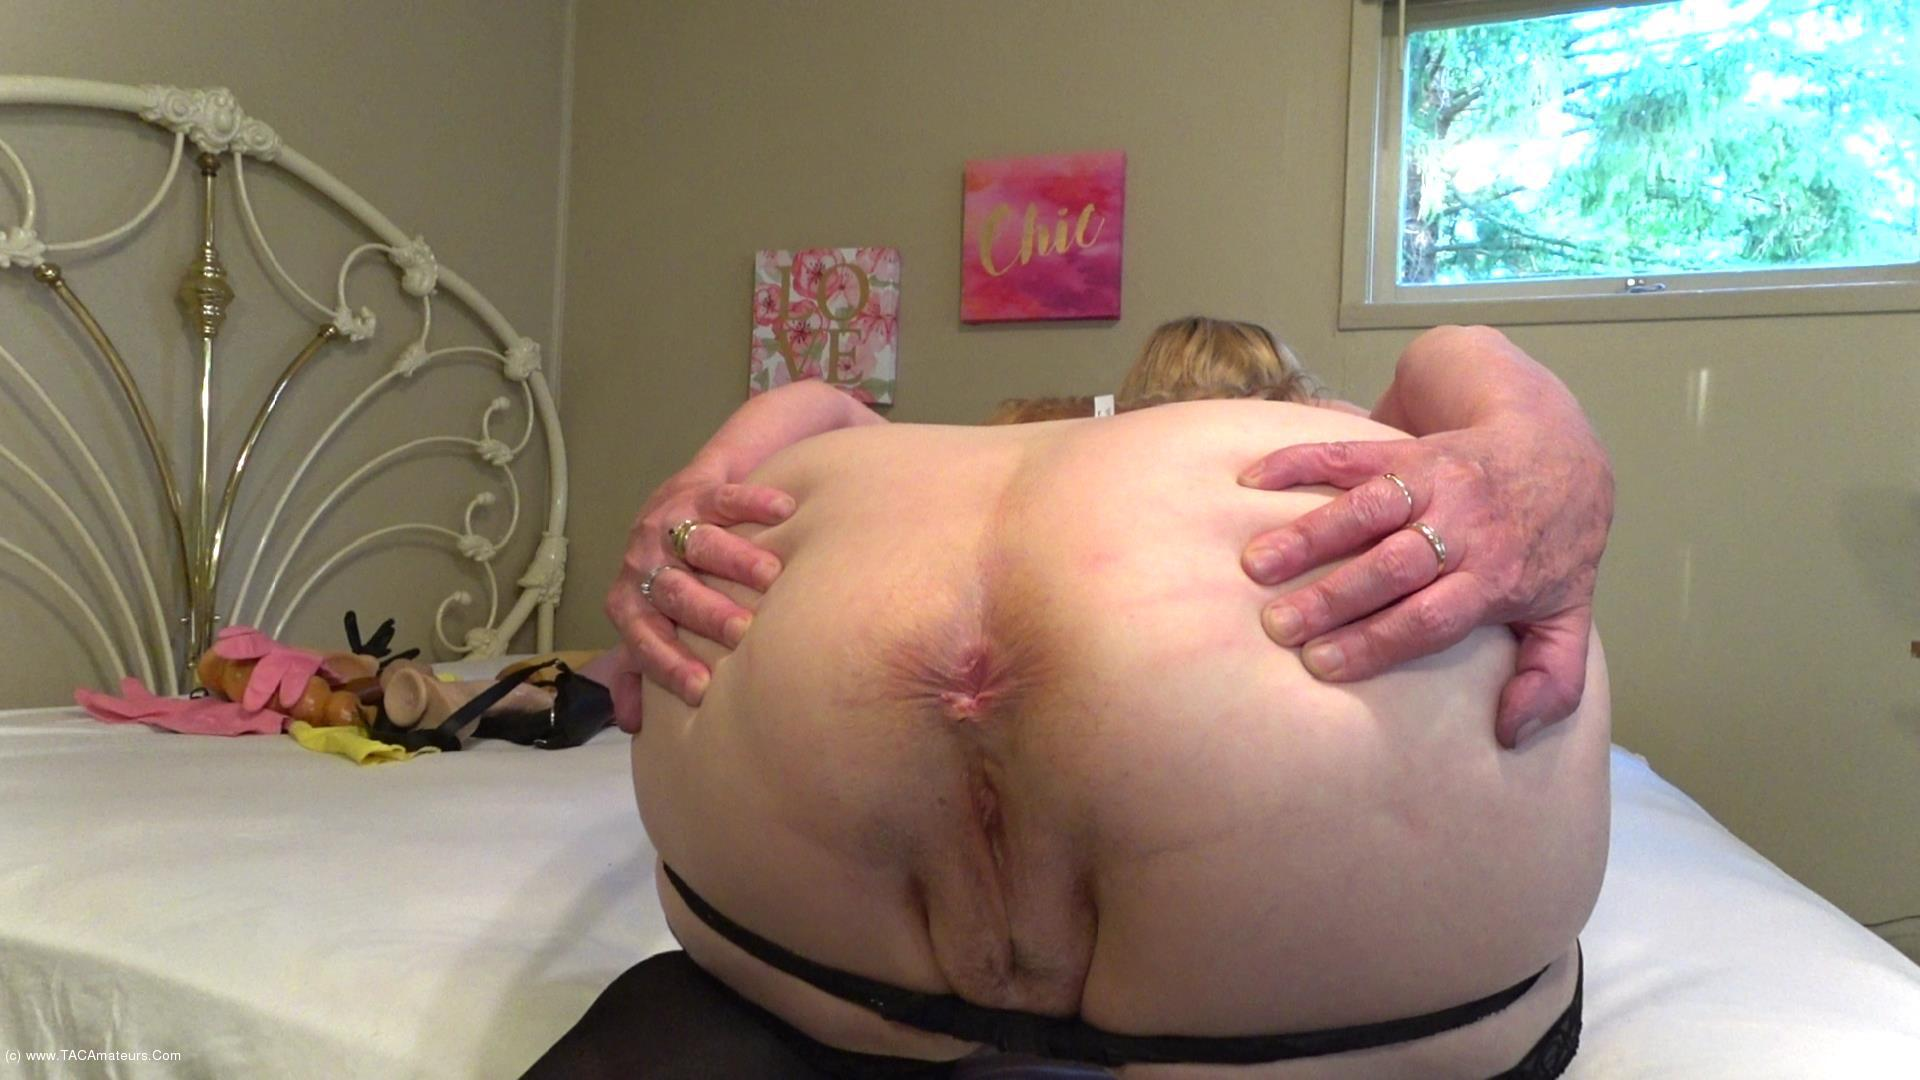 CougarBabeJolee - Sweet Sultry Arse Worship Time scene 2